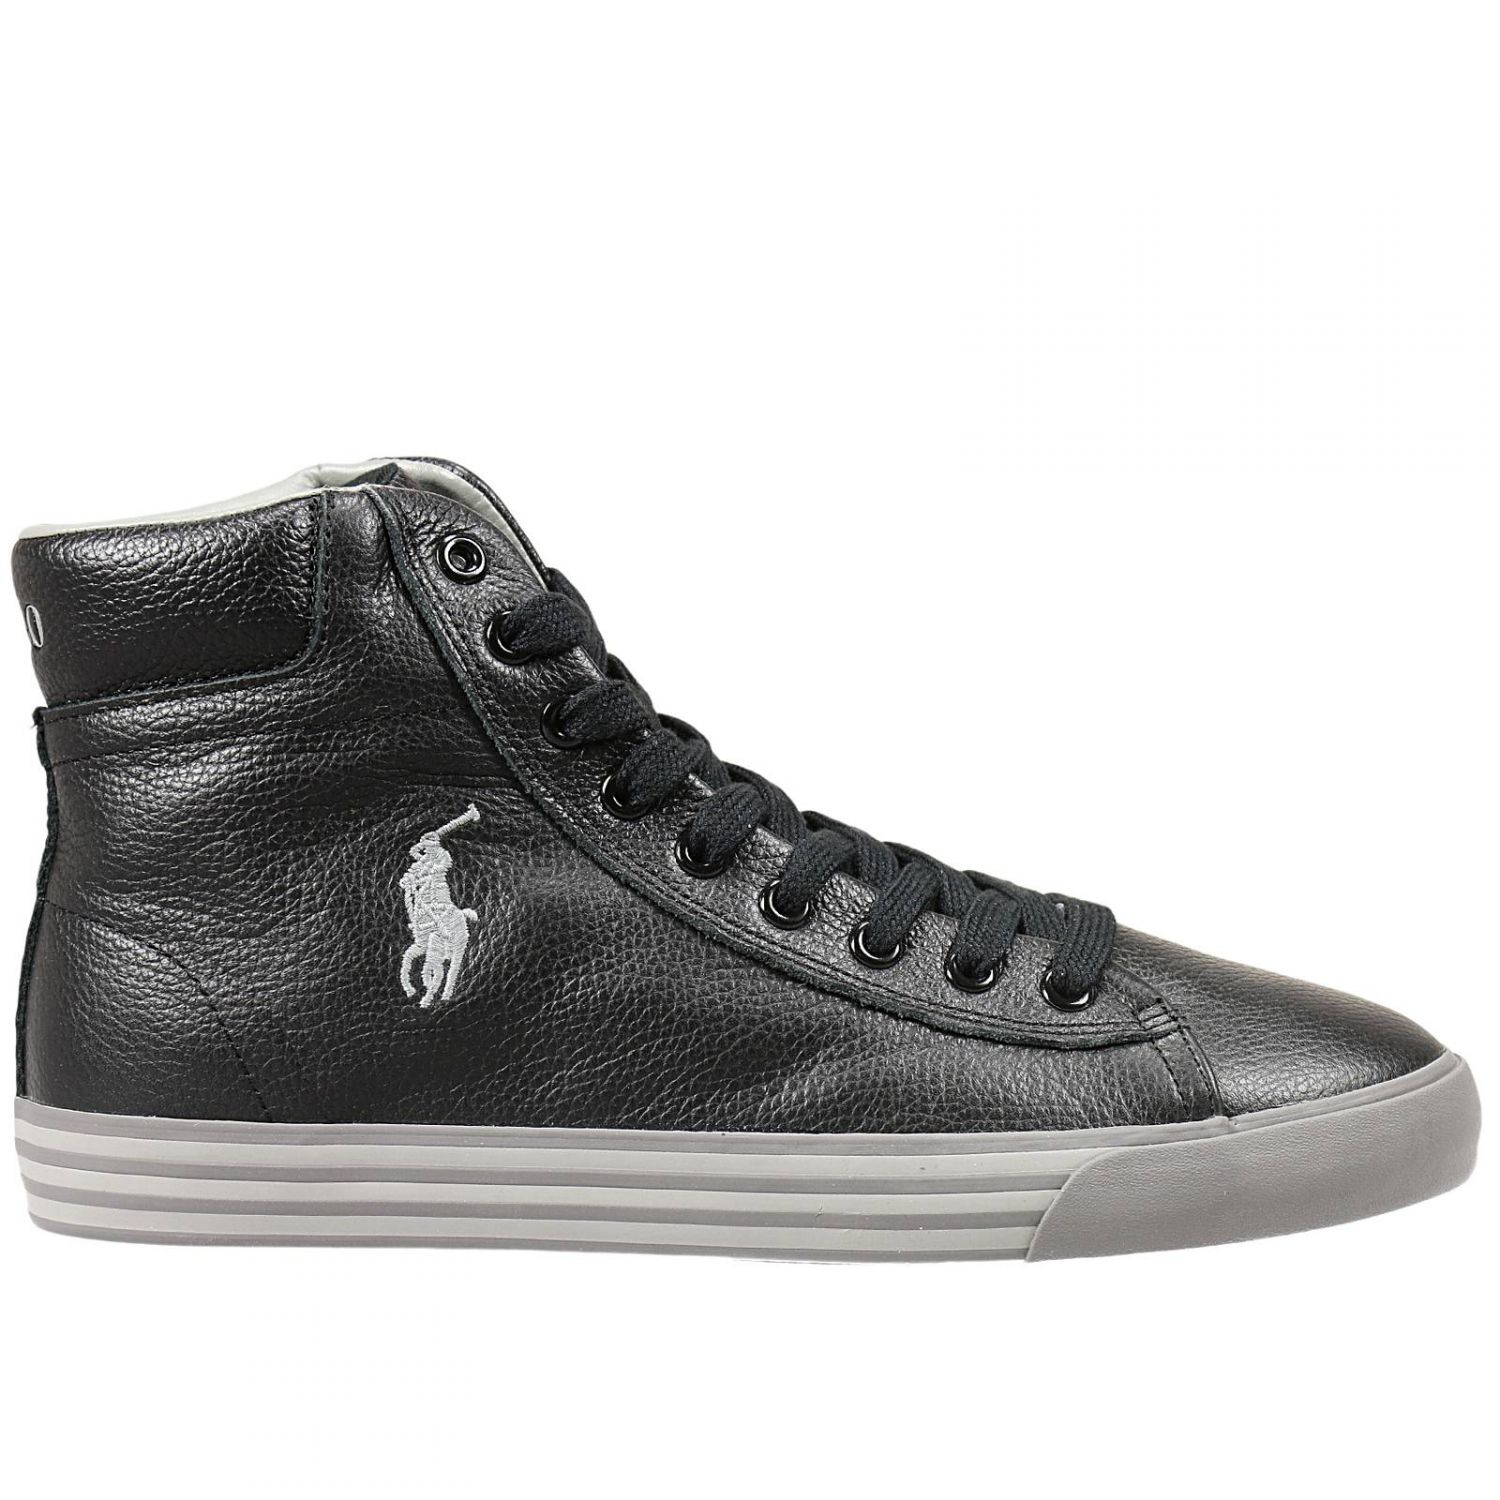 polo ralph lauren sneakers in black for men lyst. Black Bedroom Furniture Sets. Home Design Ideas